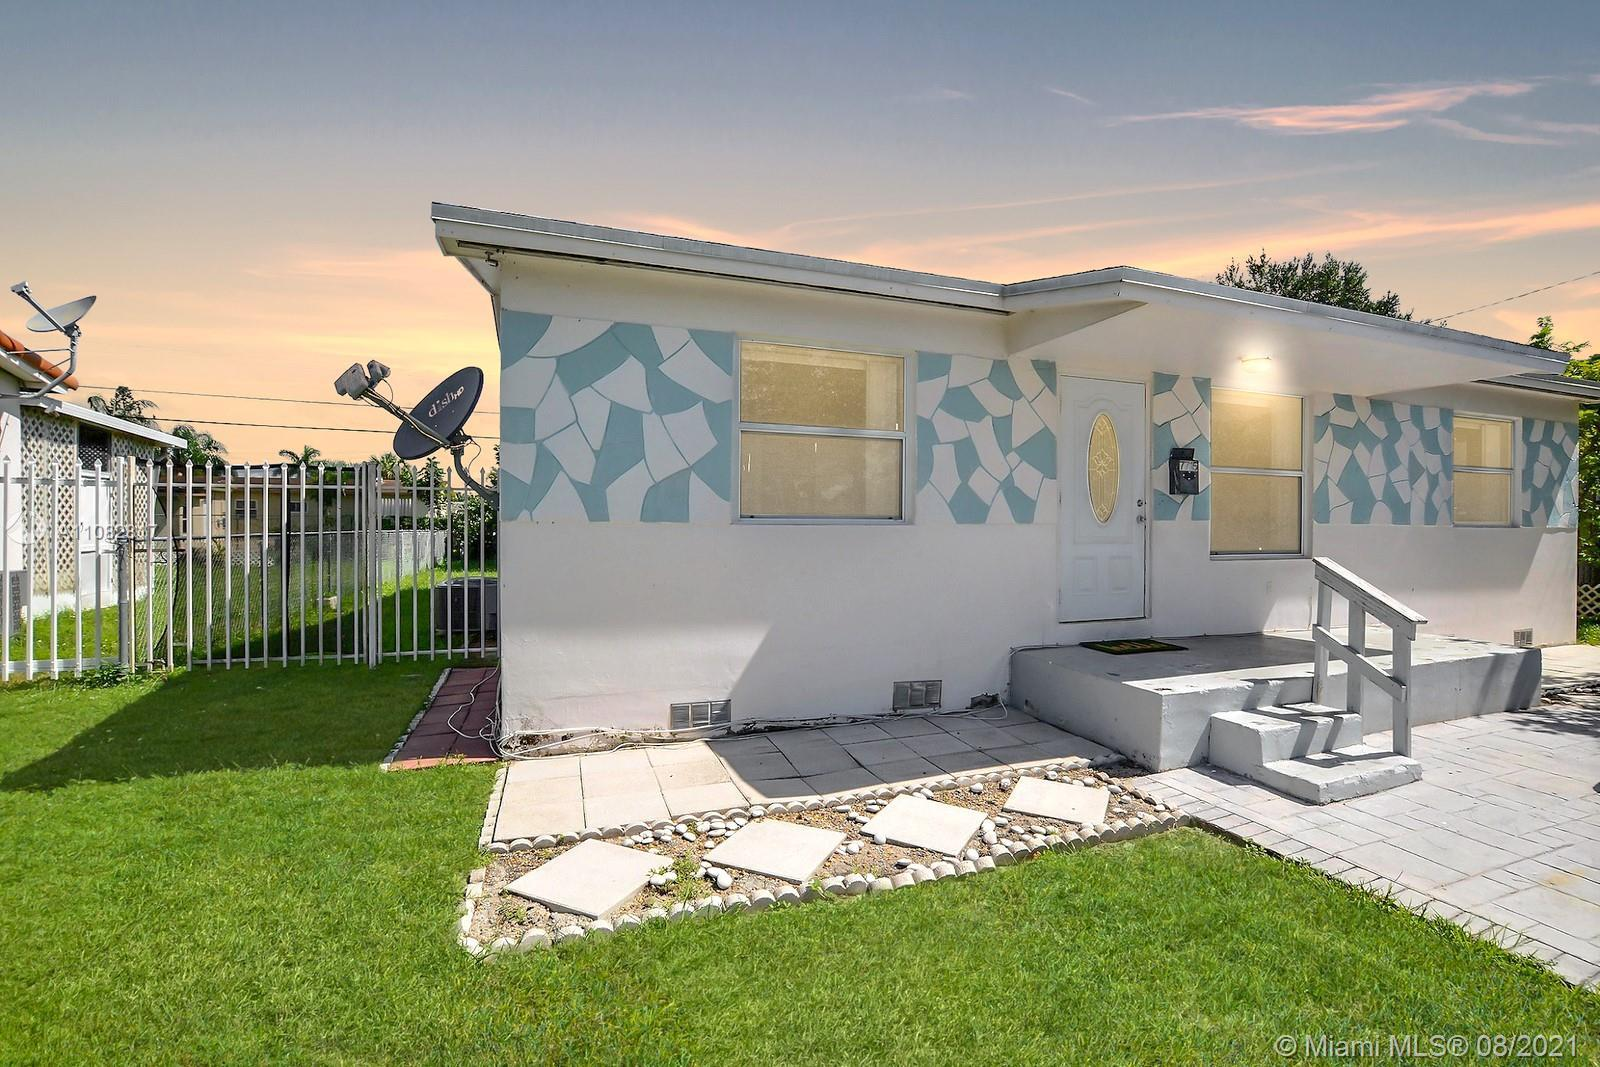 3 BEDROOM 2 FULL BATHROOM SINGLE FAMILY HOME IS LIGHT & BRIGHT. UPDATED KITCHEN HAS GRANITE COUNTERS